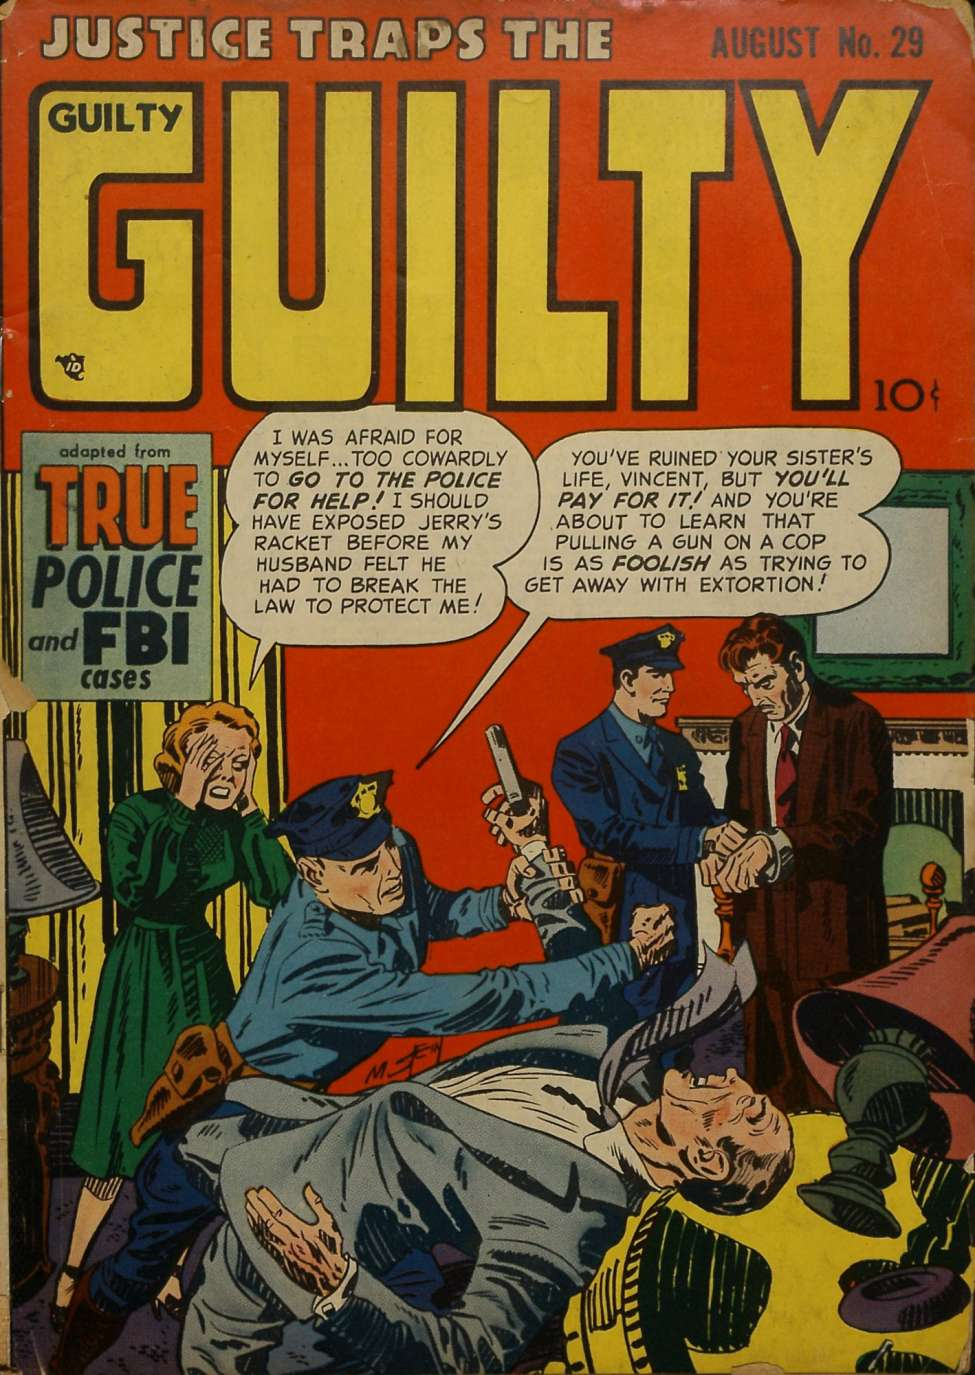 Comic Book Cover For Justice Traps the Guilty v4 11 (29)